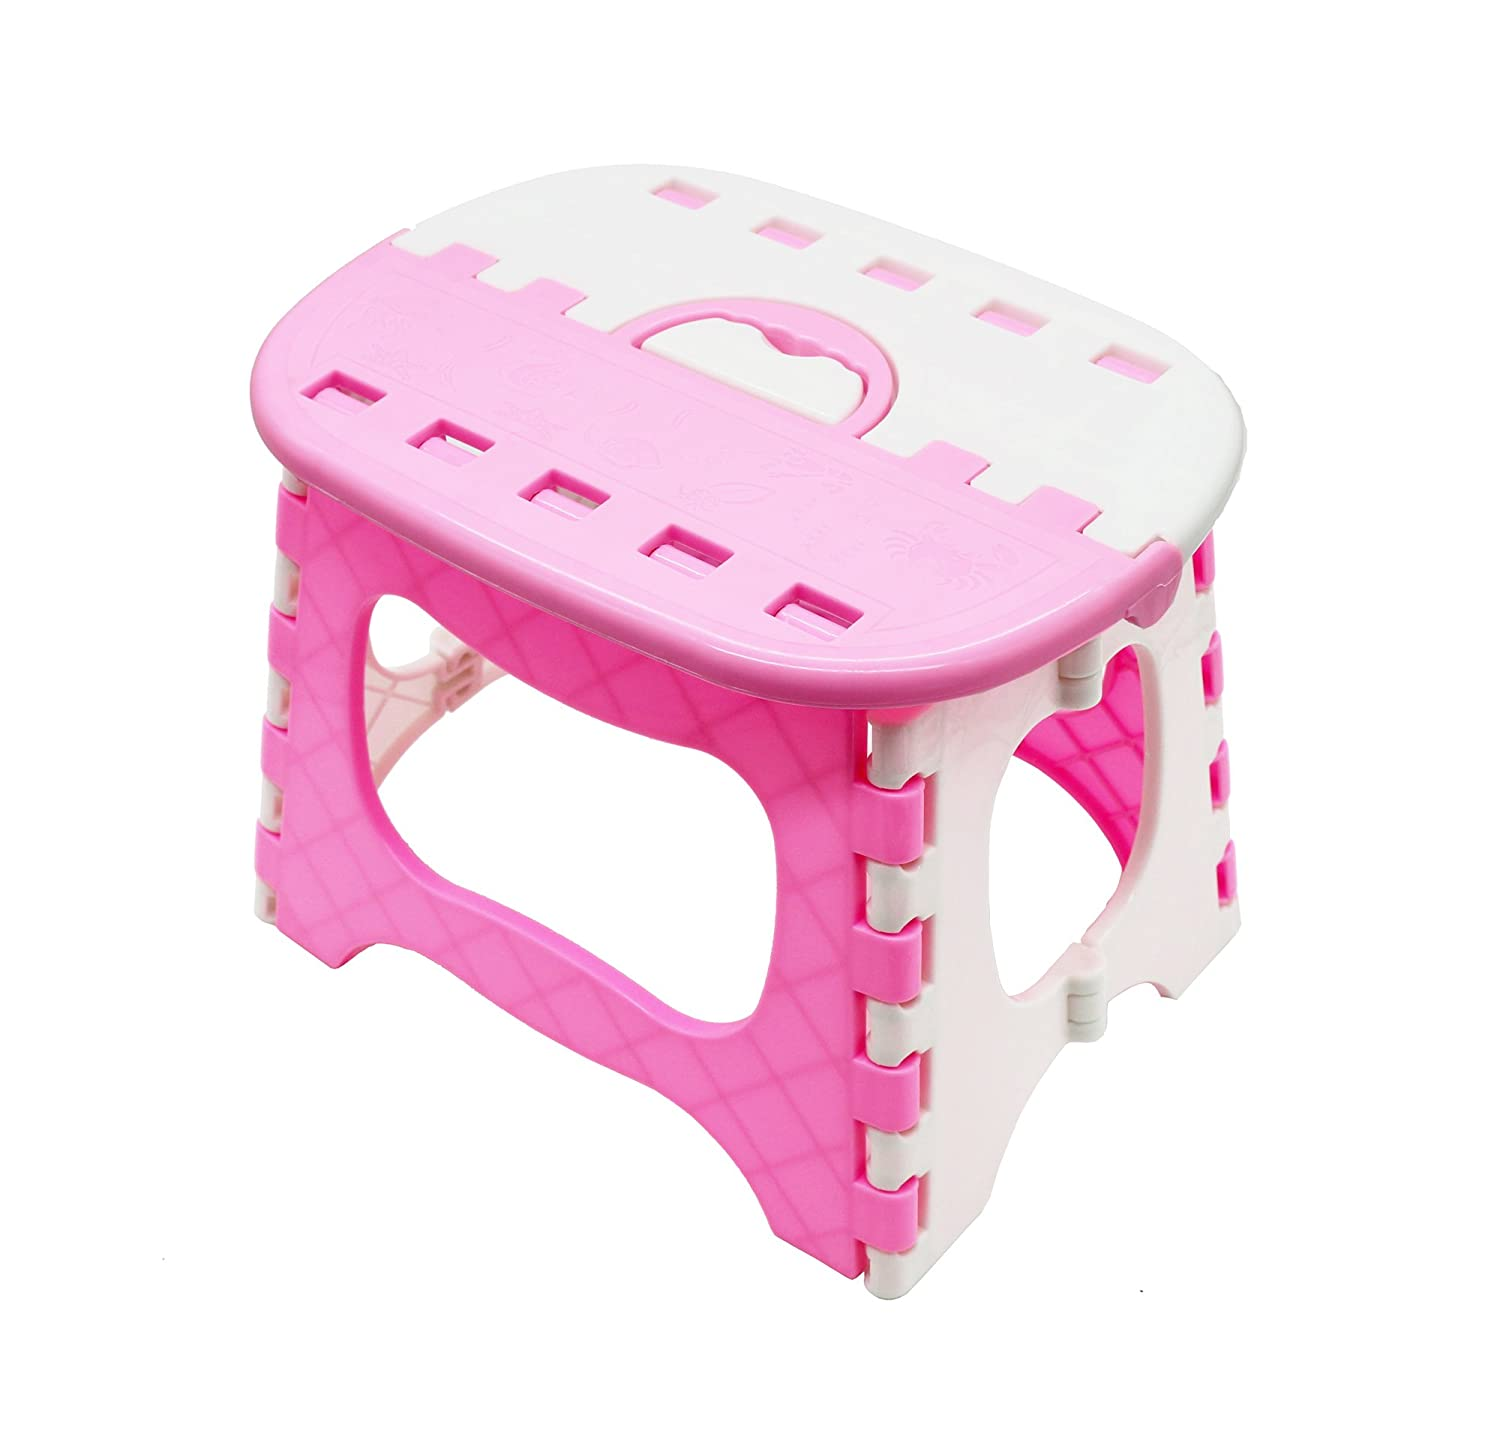 APIKA Foldable Step Stool For Kids Plastic Portable Easy Carrying Suitable For Travel Camping Fishing Outdoor Use(blue)